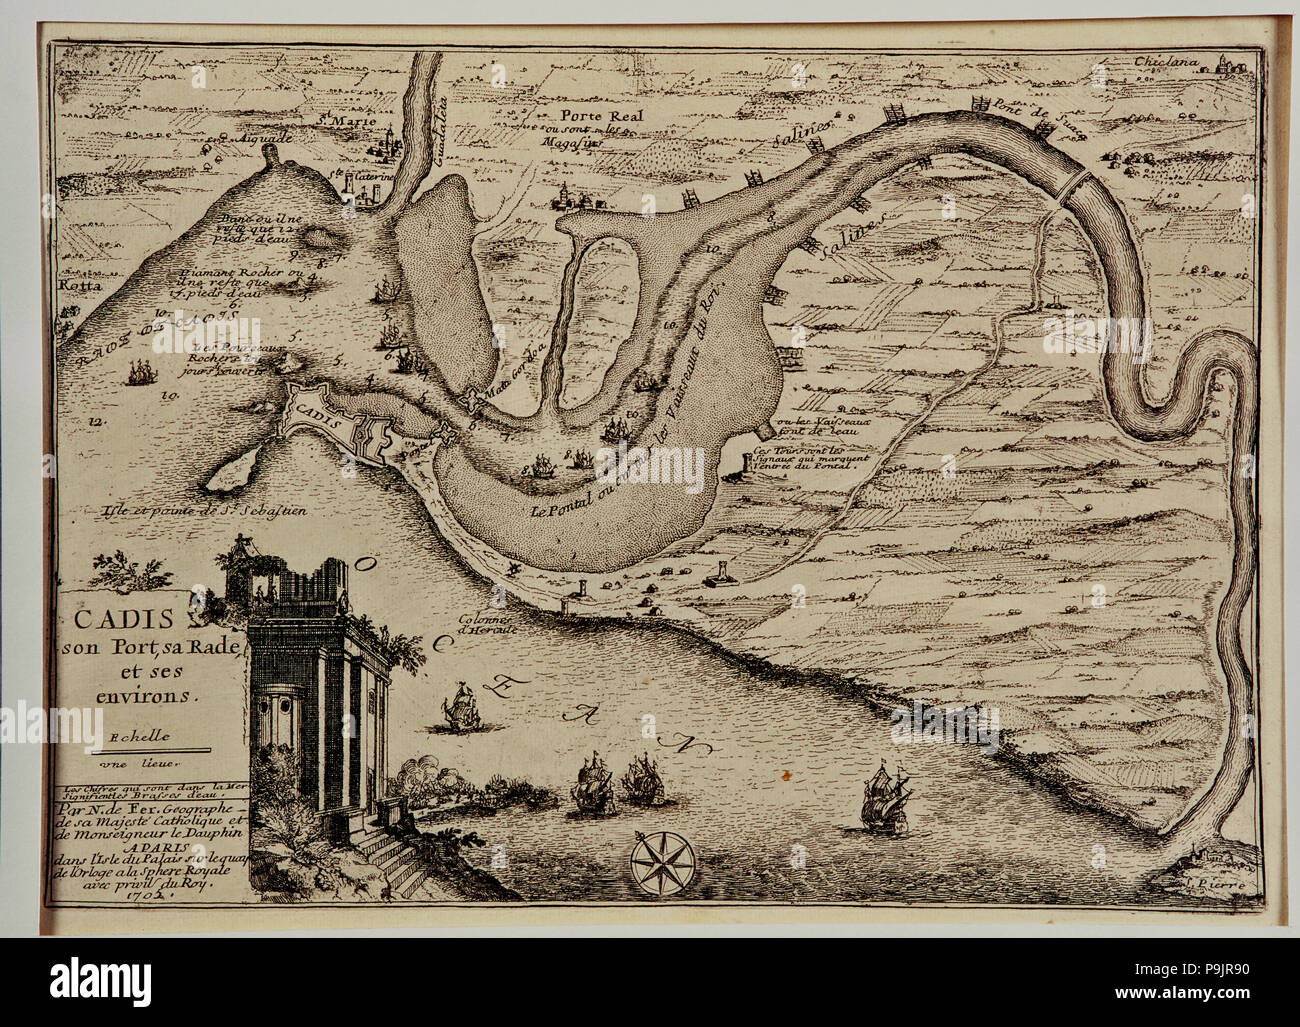 Schematic drawing of the harbor and the roads of the bay of Cadiz, at left drawing of the Pillars… Stock Photo